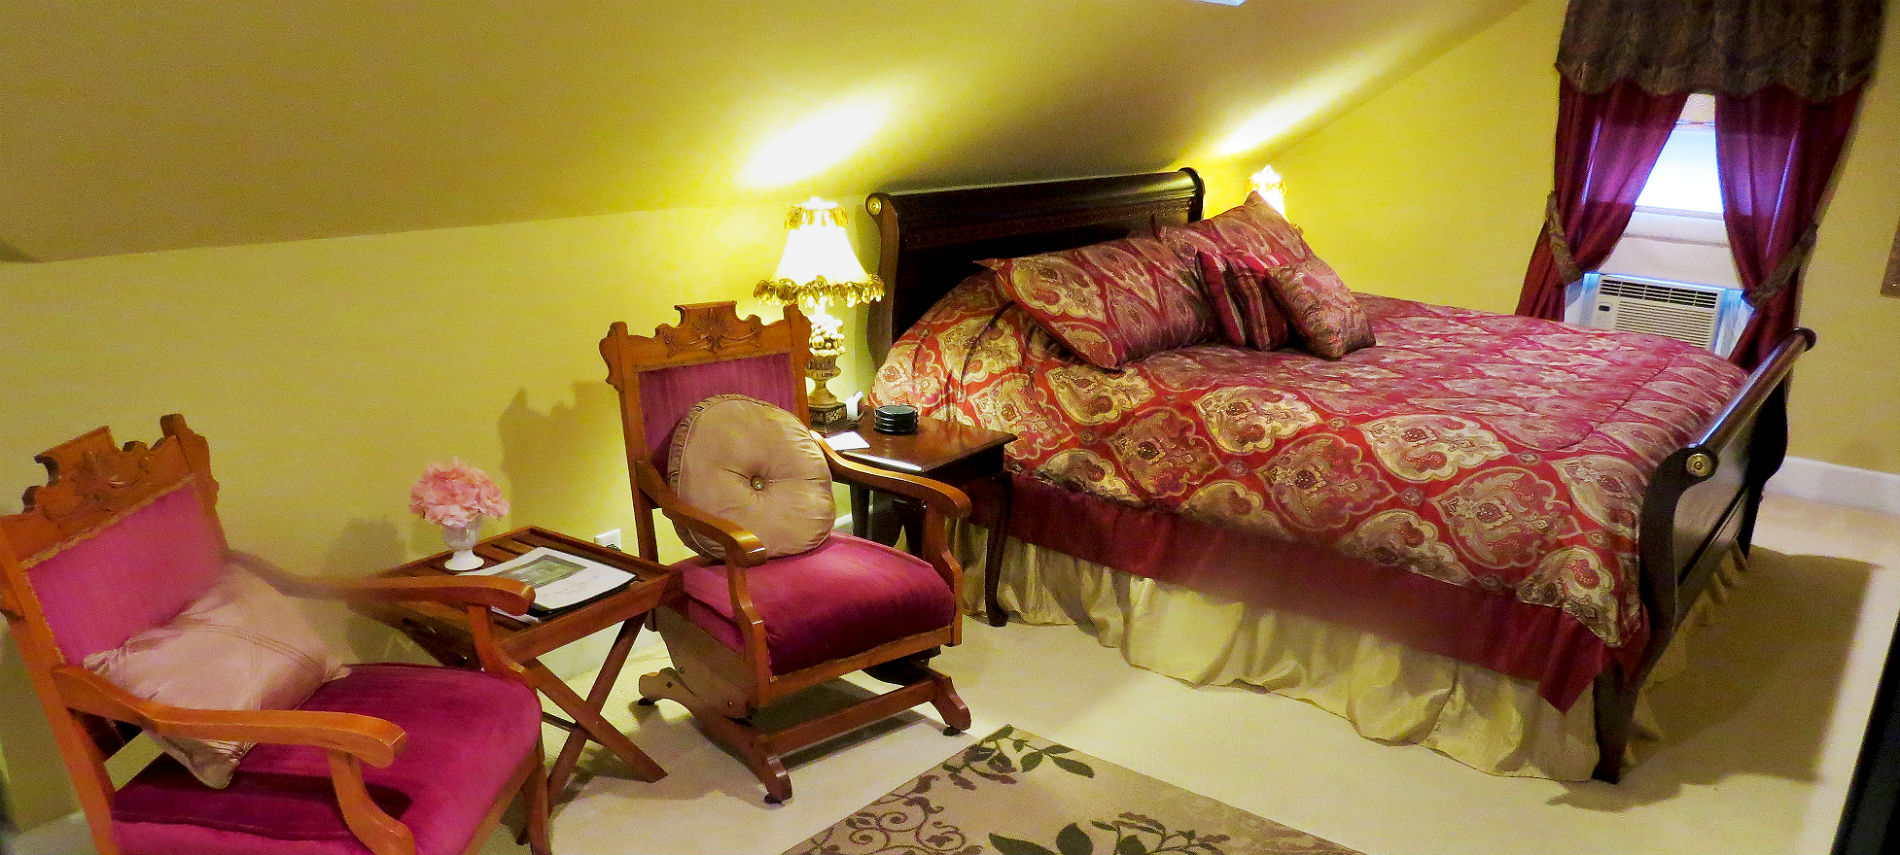 Two wood chairs with red velvet cushions next to a cherry sleigh bed with a burgundy and gold bedspread